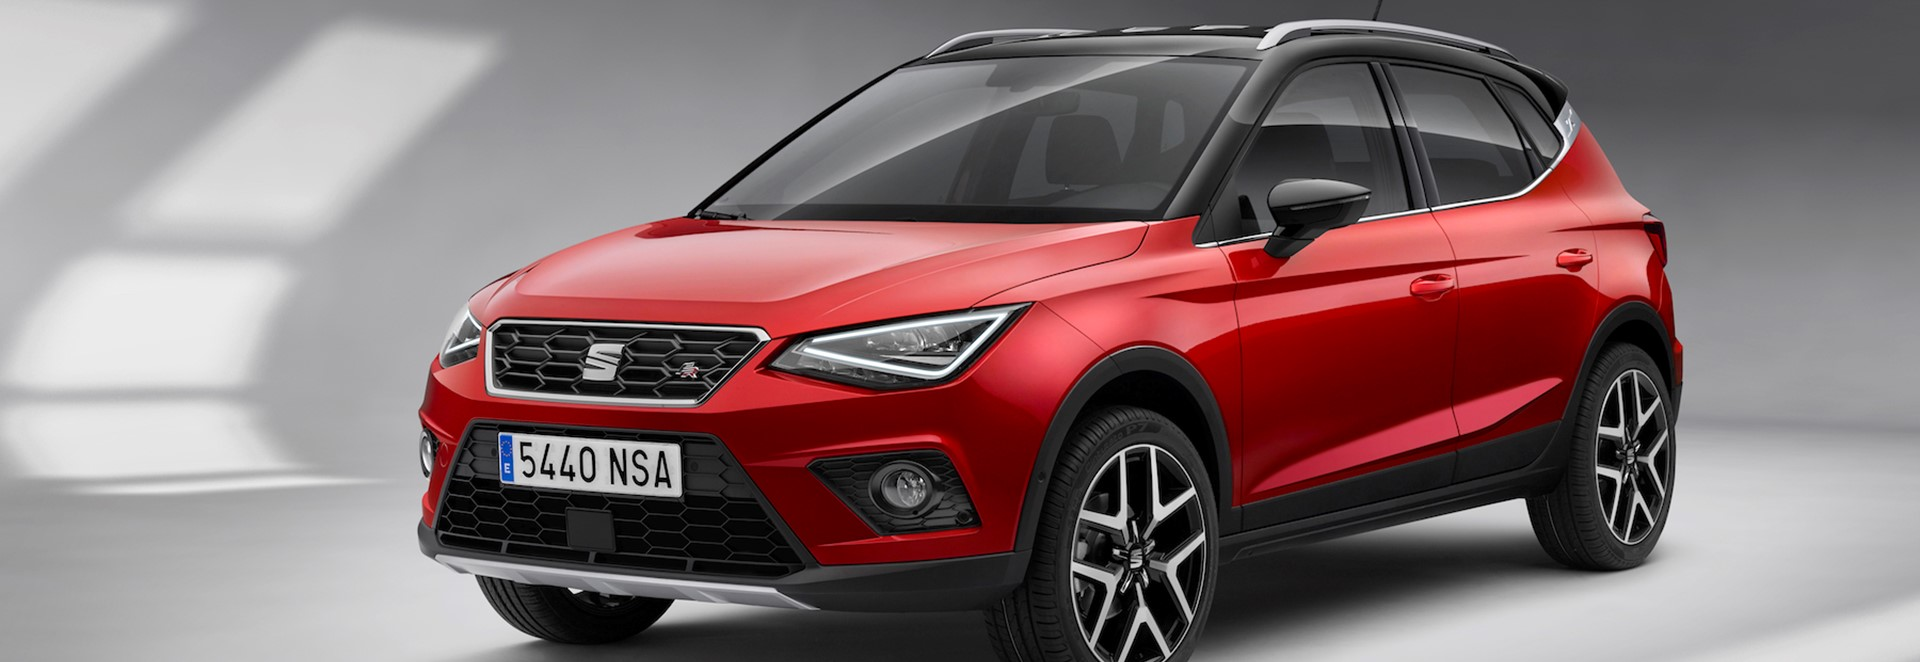 Seat reveals prices and trims for Arona SUV